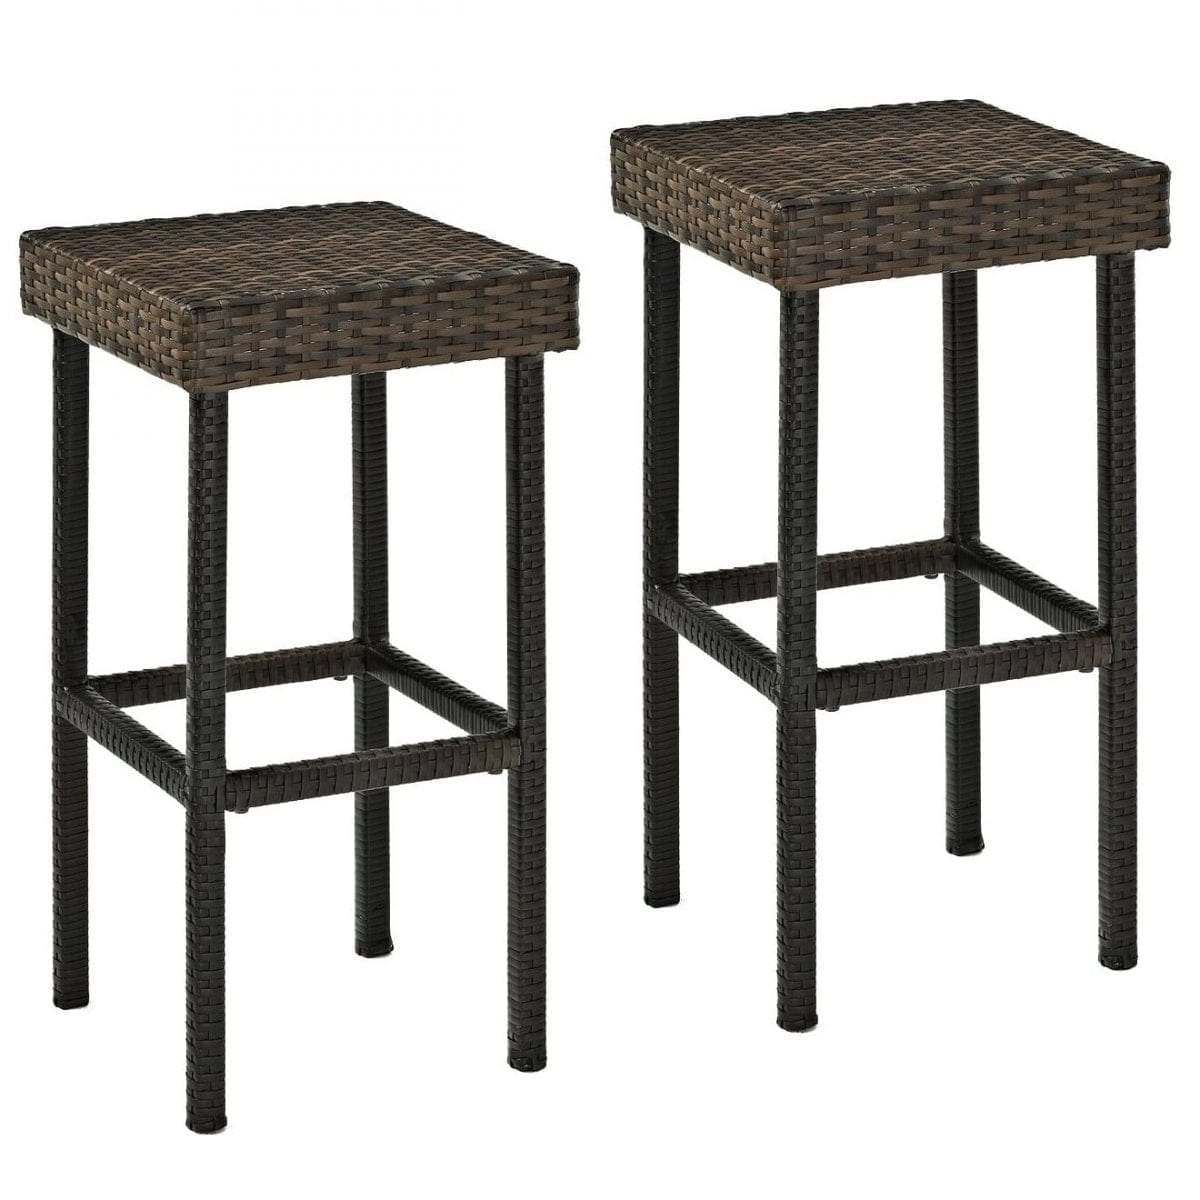 crosley-furniture-palm-harbor-outdoor-wicker-bar-stool Wicker Bar Stools & Rattan Bar Stools